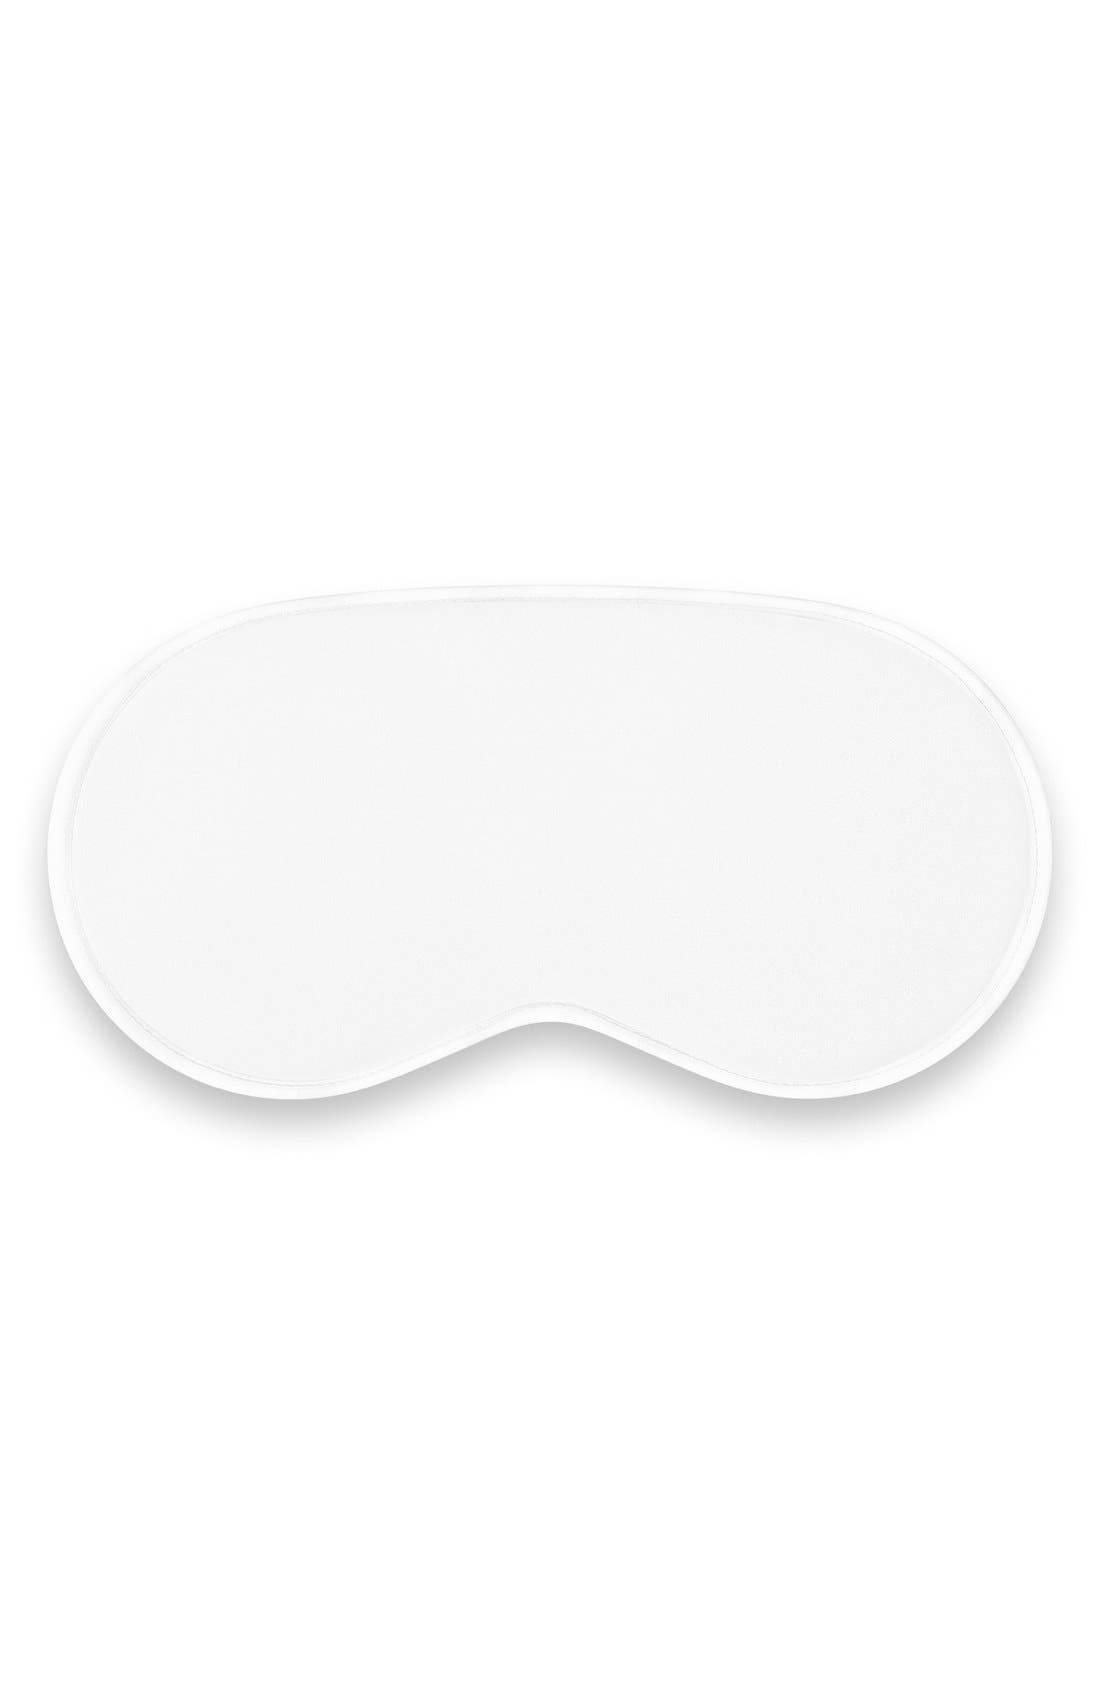 Glow Beauty Boosting Eye Mask,                         Main,                         color, 000